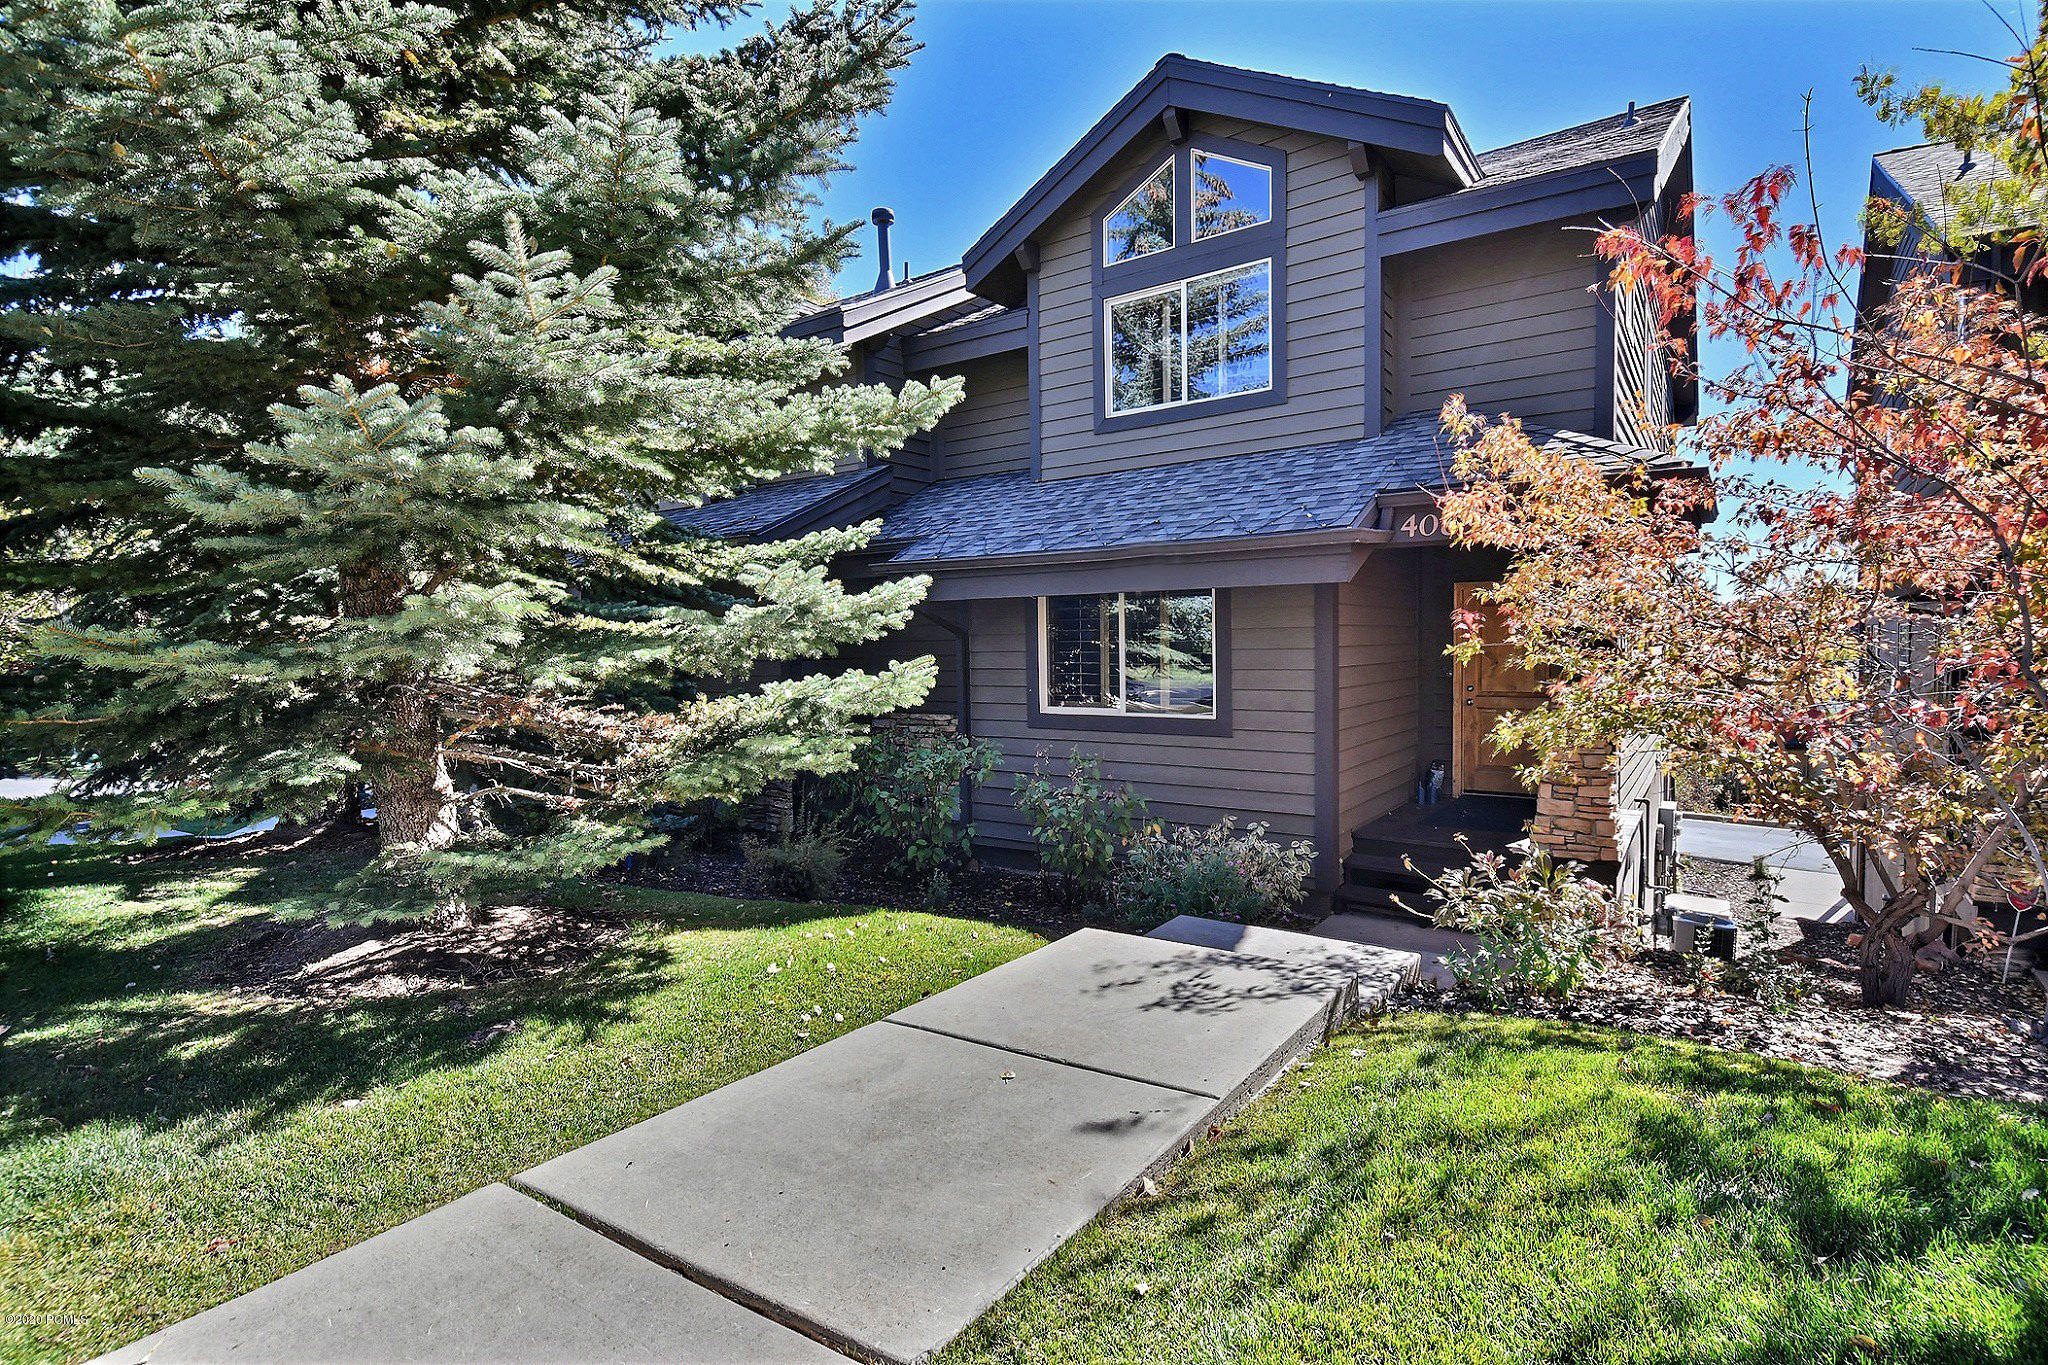 4085 Saddleback Road, Park City, Utah 84098, 4 Bedrooms Bedrooms, ,3 BathroomsBathrooms,Condominium,For Sale,Saddleback,12003784